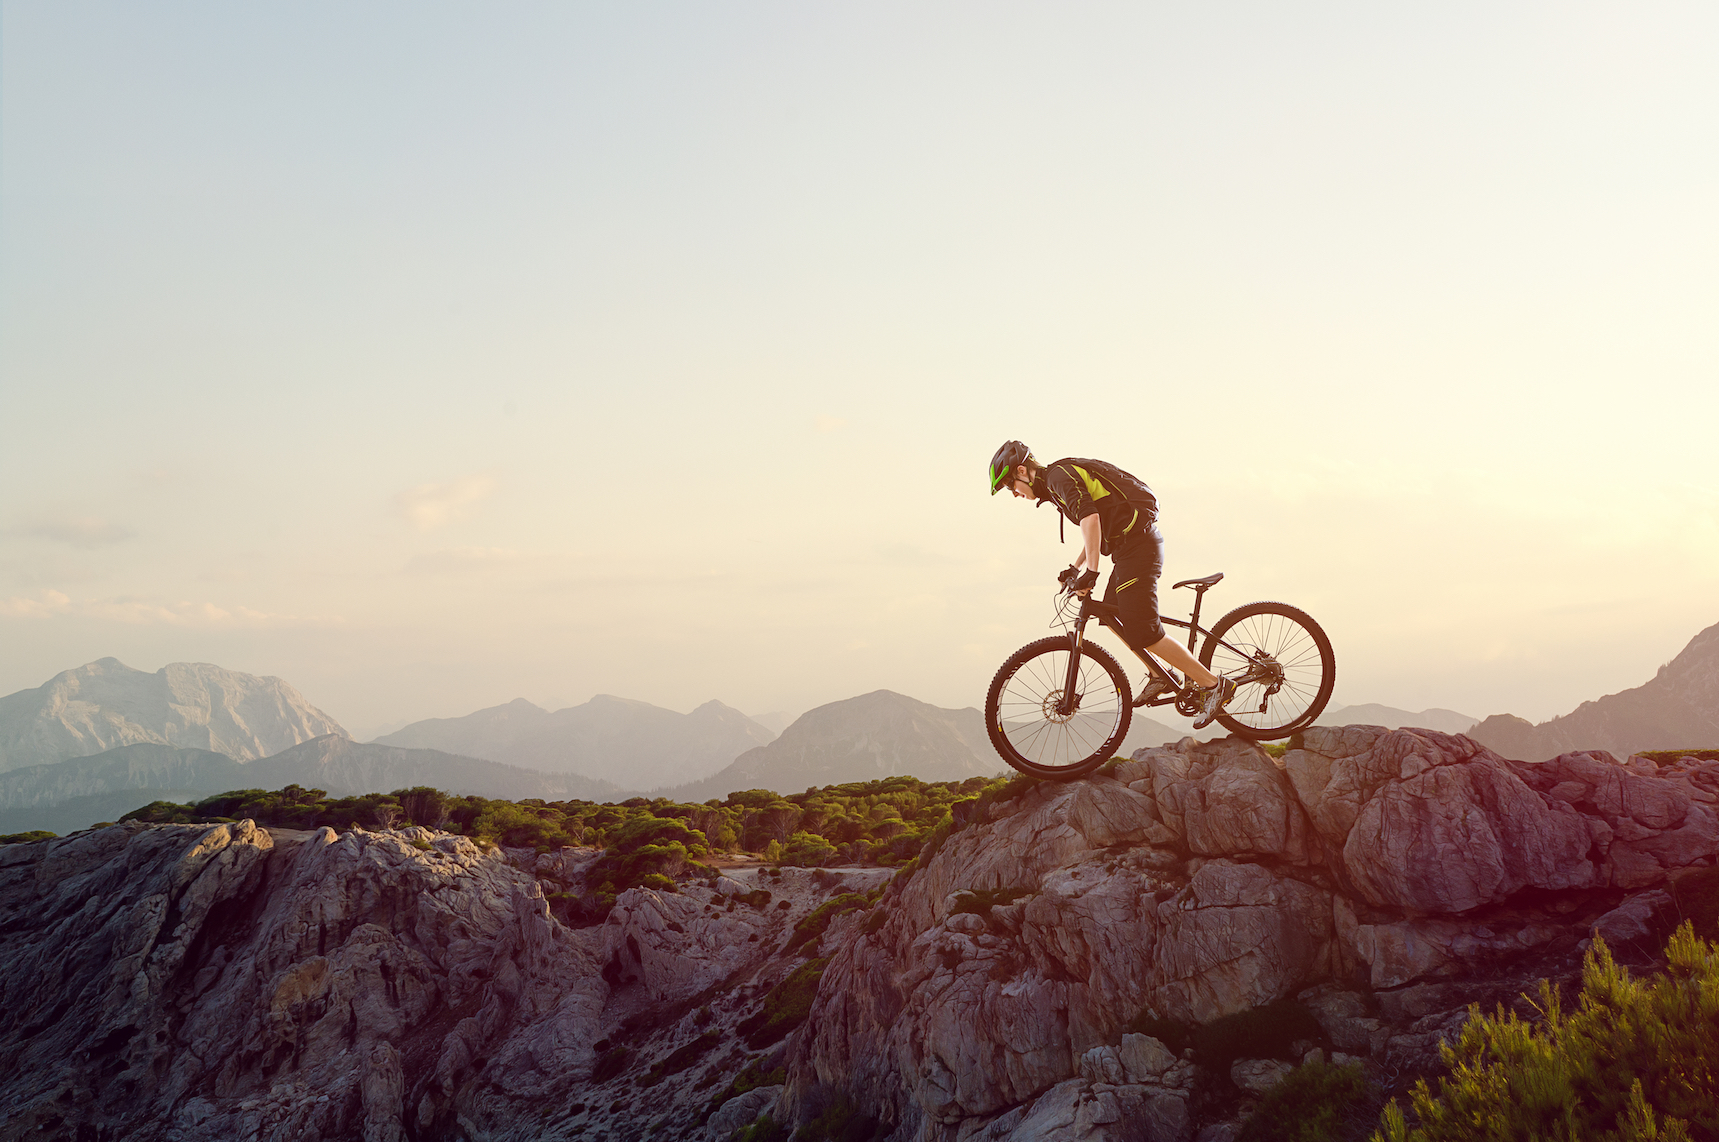 Mountain biking in wilderness areas are part of the bigger question of how bikes fit into the environment and the environmental community.